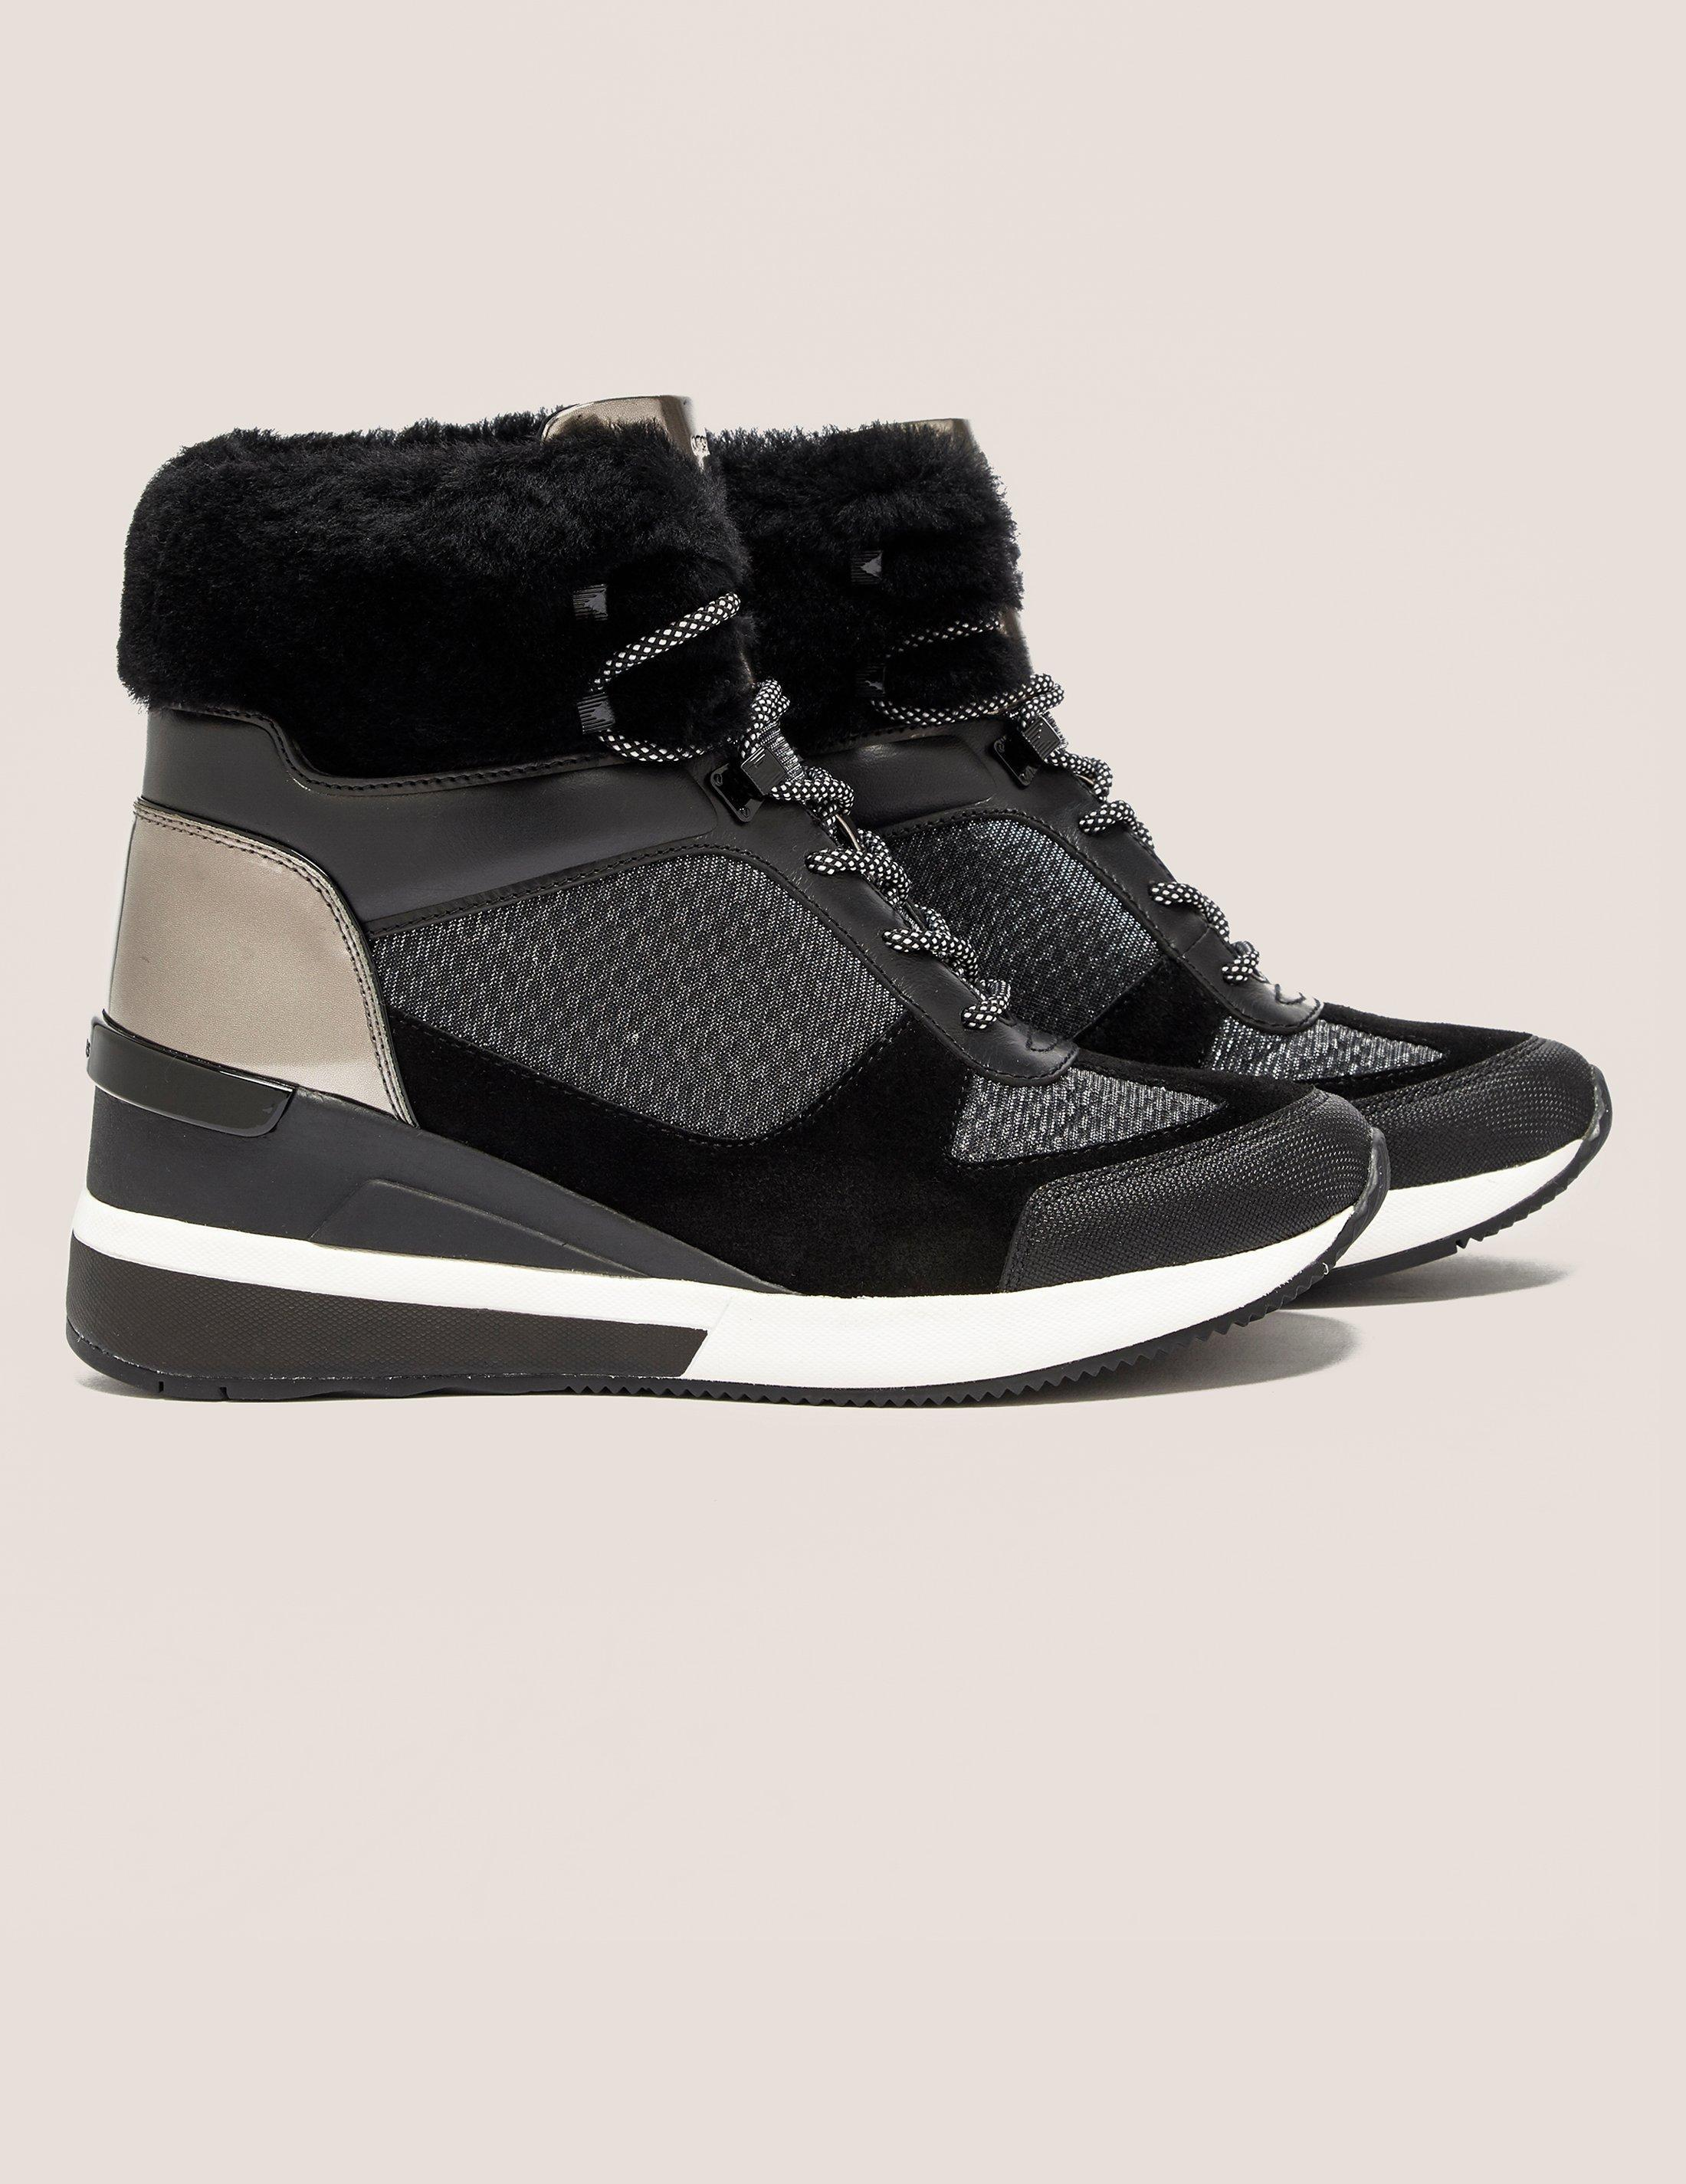 3044e86cc20 Lyst - Michael Kors Scout Boot Black in Black - Save 31%